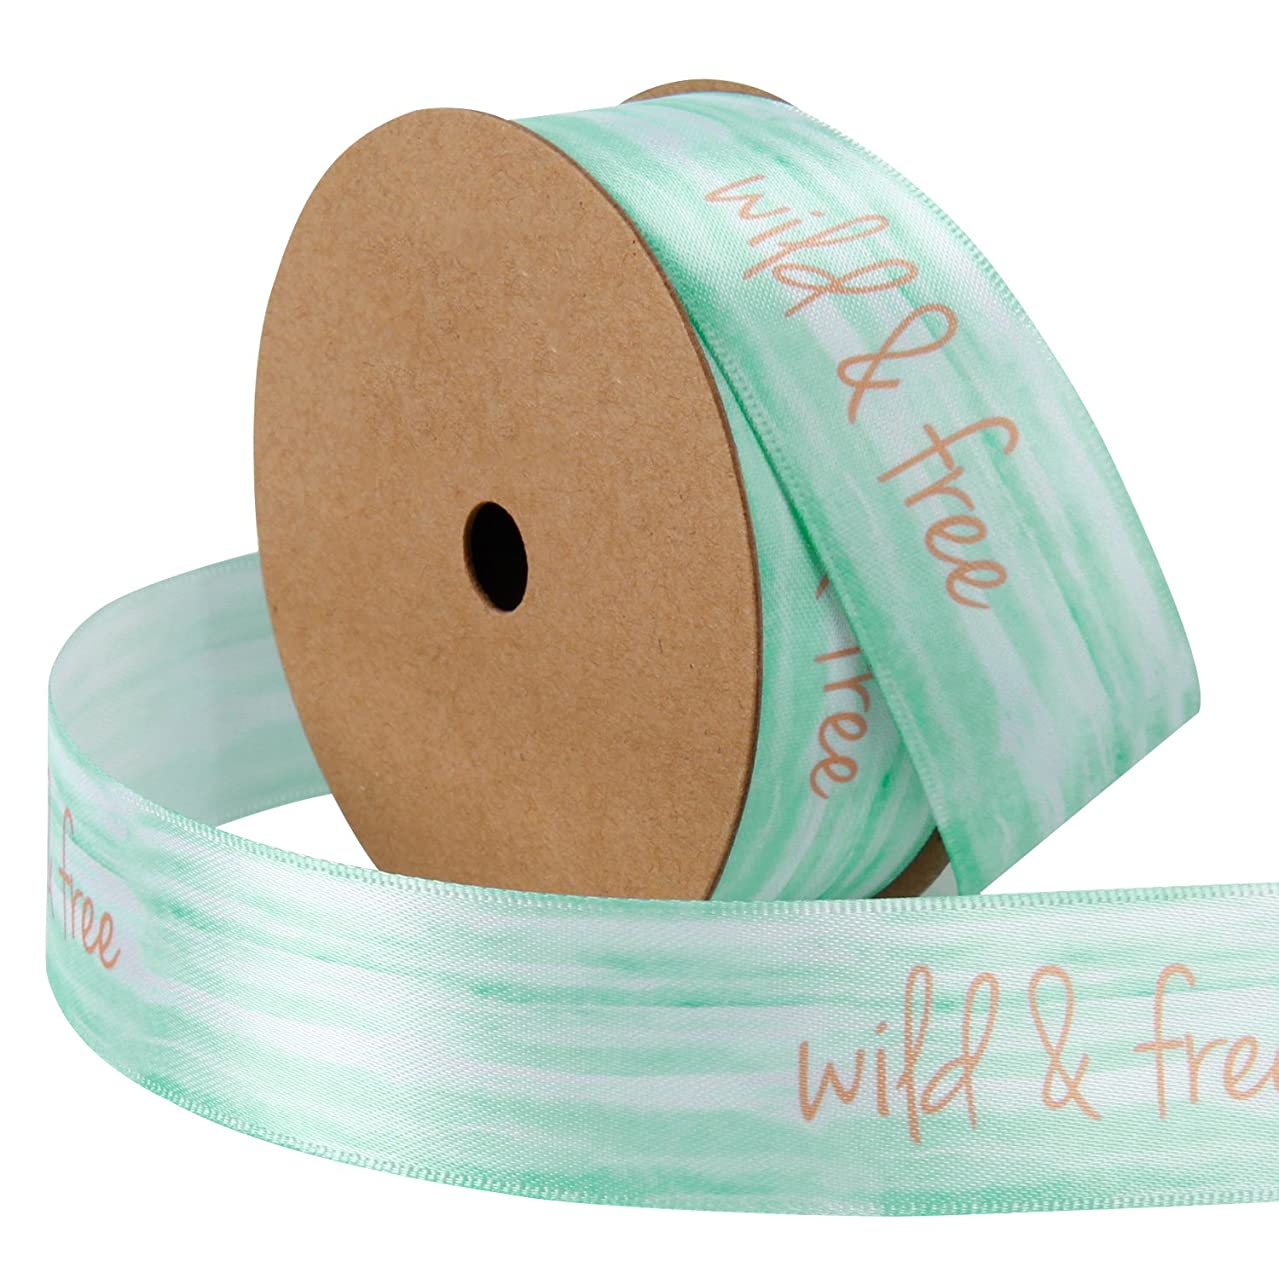 LaRibbons 1 inch Watercolor Printing Satin Ribbons Continuous 10 Yards Roll,Wild and Free